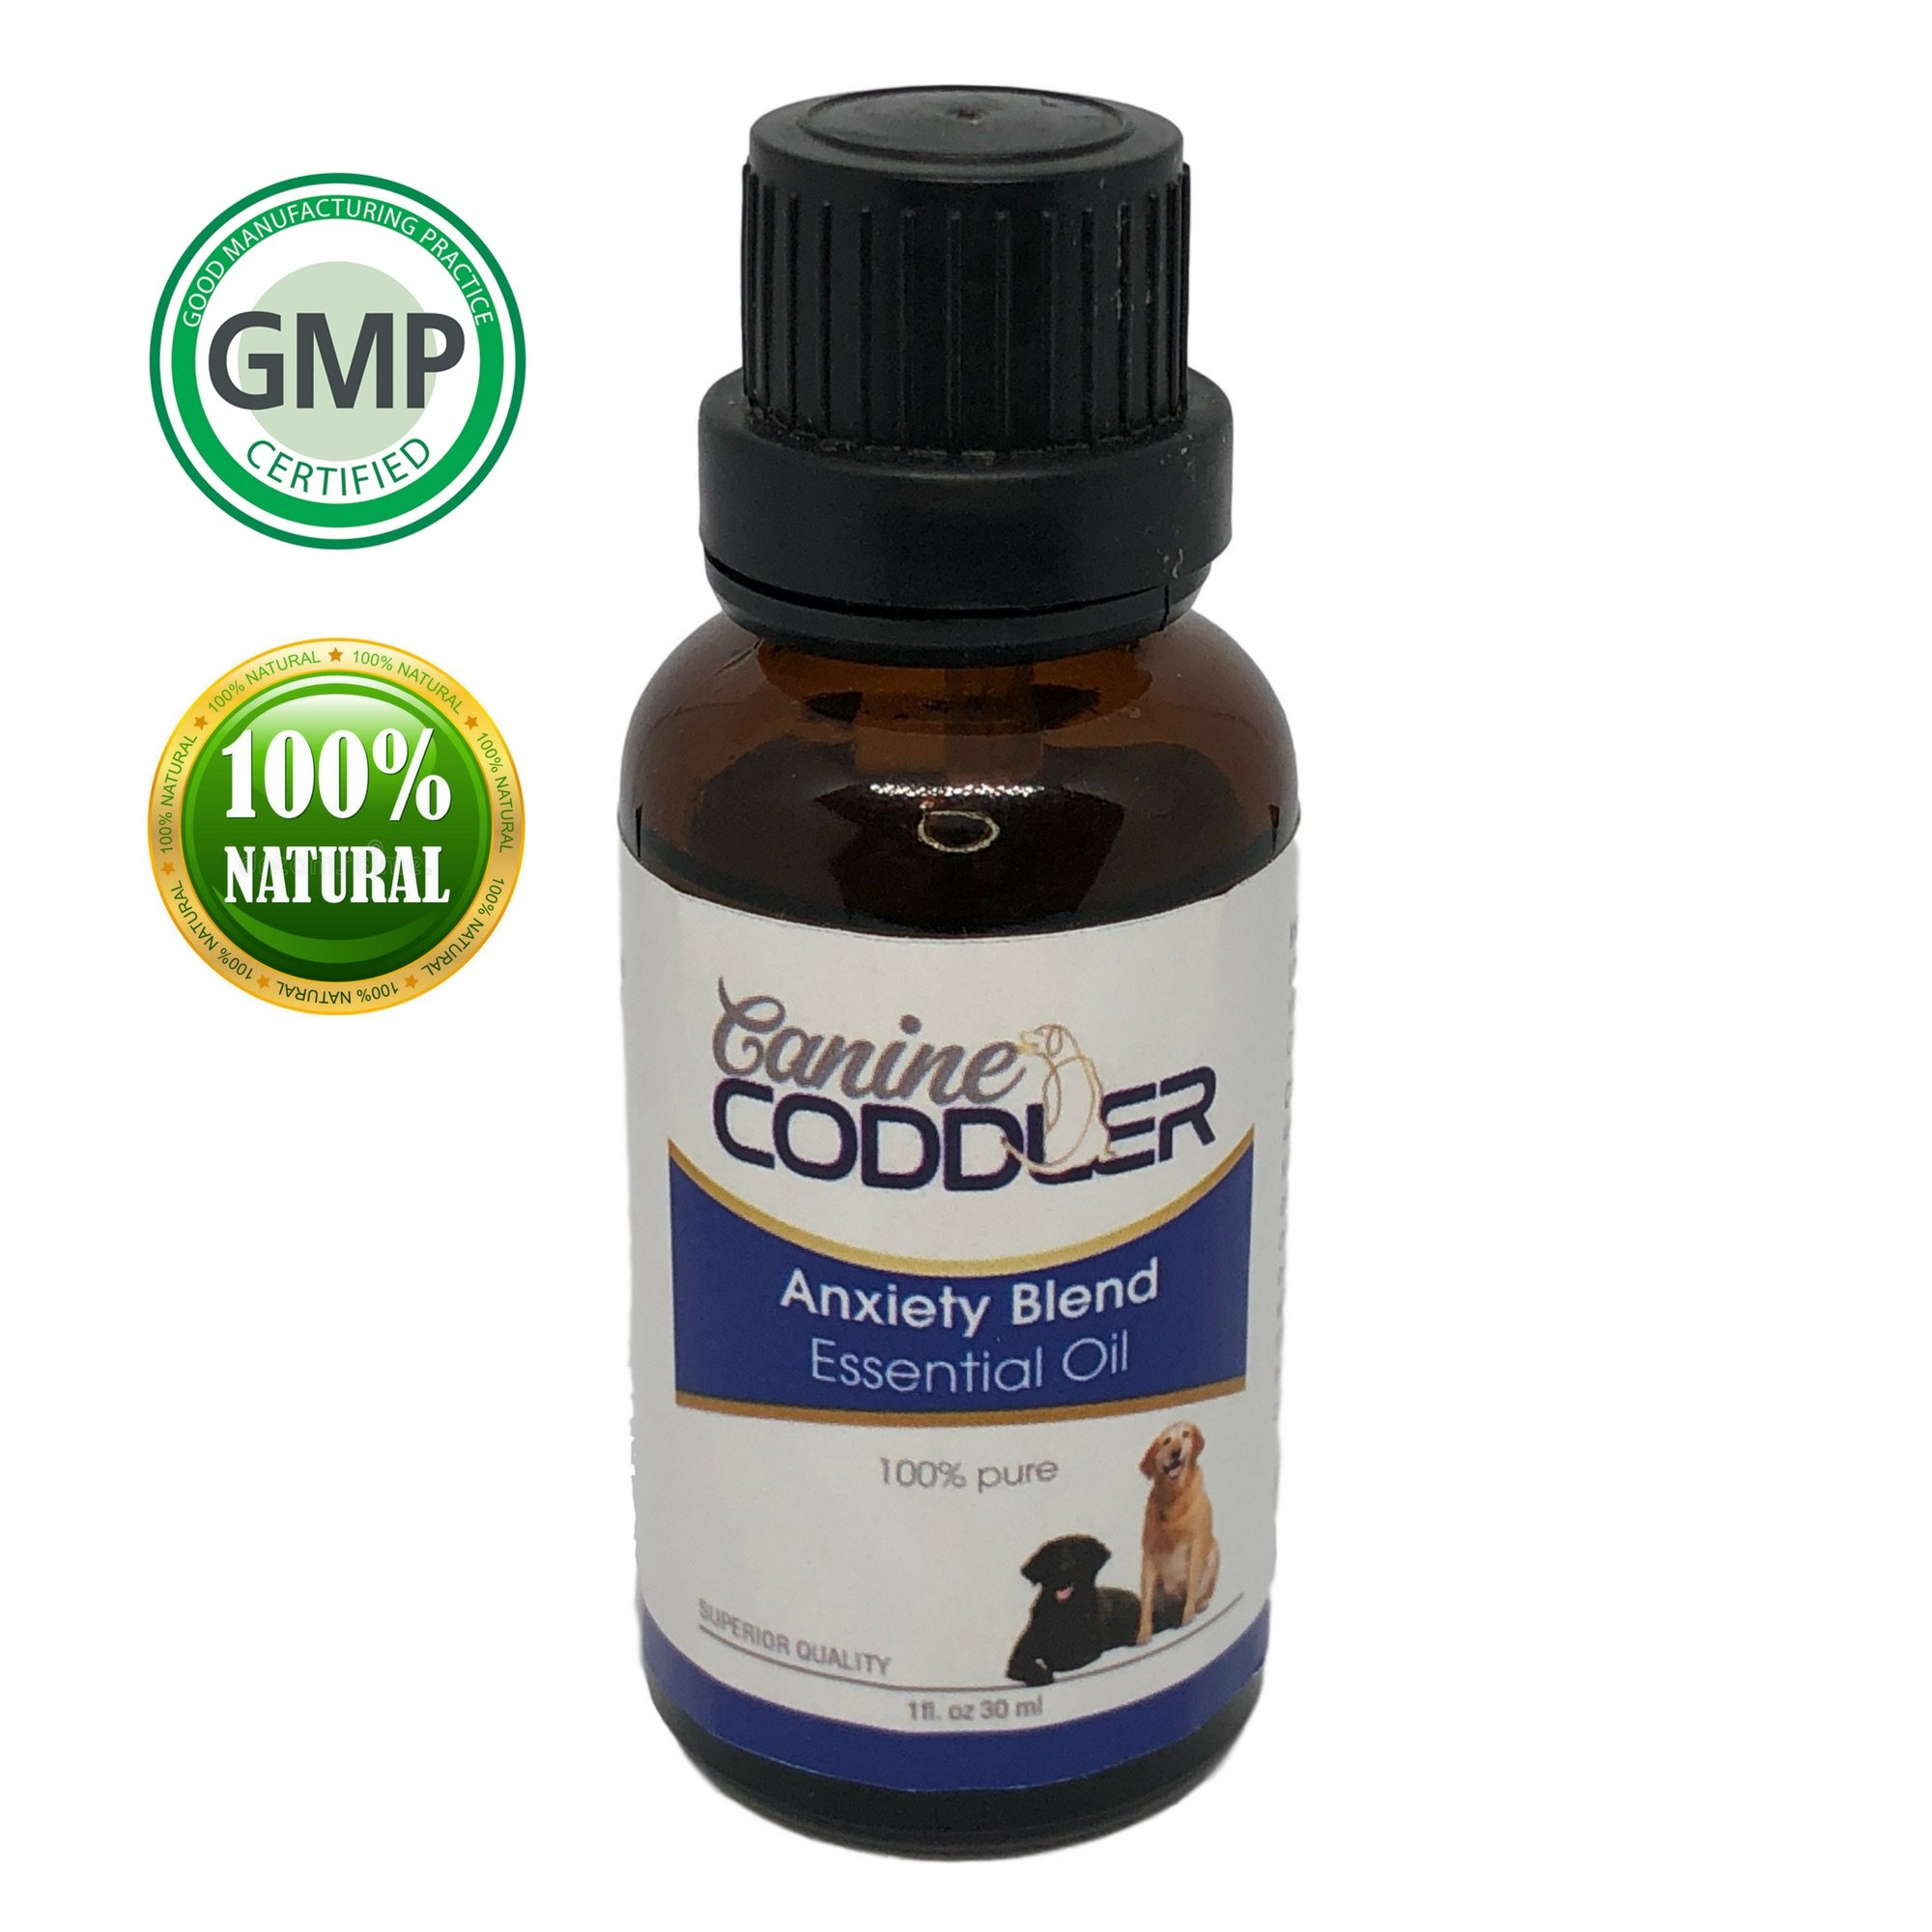 Canine Coddler Pet Calming Essential- Oil Aromatherapy Treatment for Dogs one piece bottle best to reduce Stress Separation Anxiety Ease And Calm 1 oz 30ml bottle